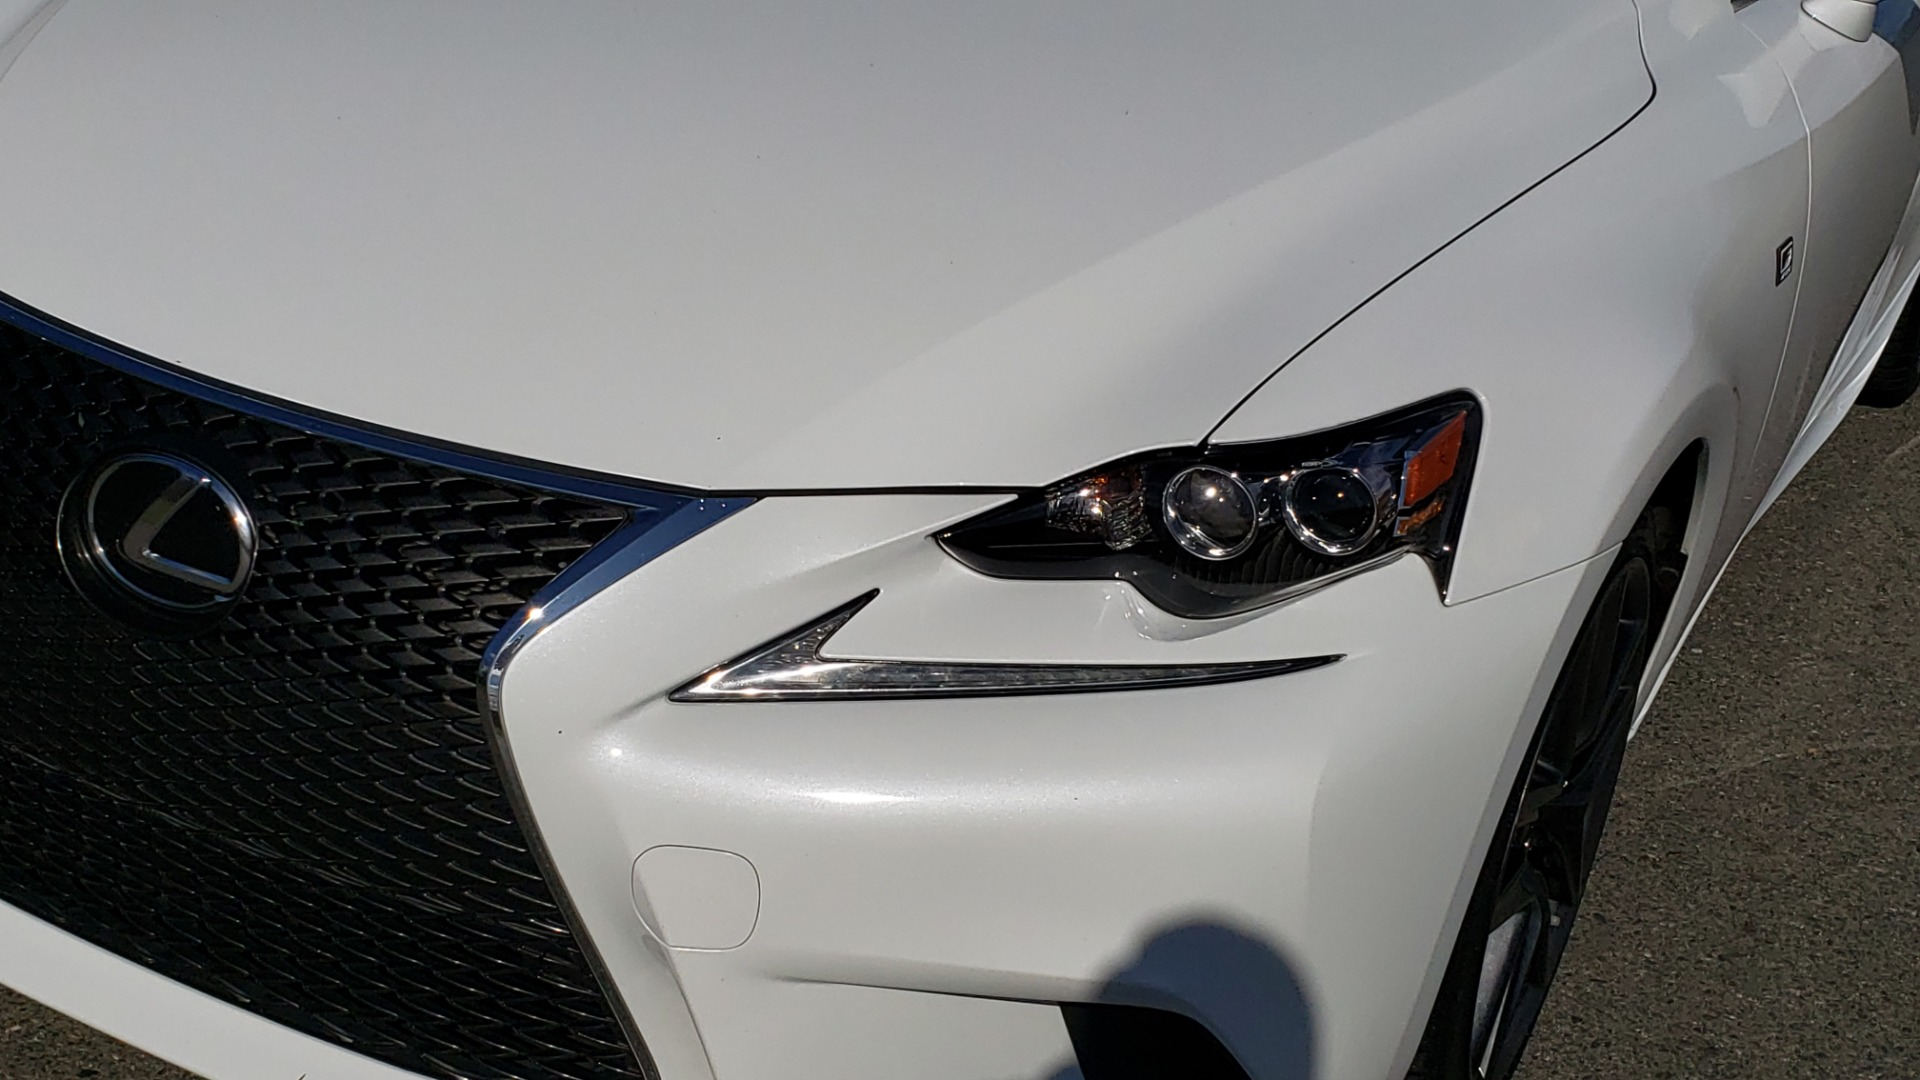 Used 2014 Lexus IS 250 F-SPORT / NAV / SUNROOF / REARVIEW / BSM for sale Sold at Formula Imports in Charlotte NC 28227 22